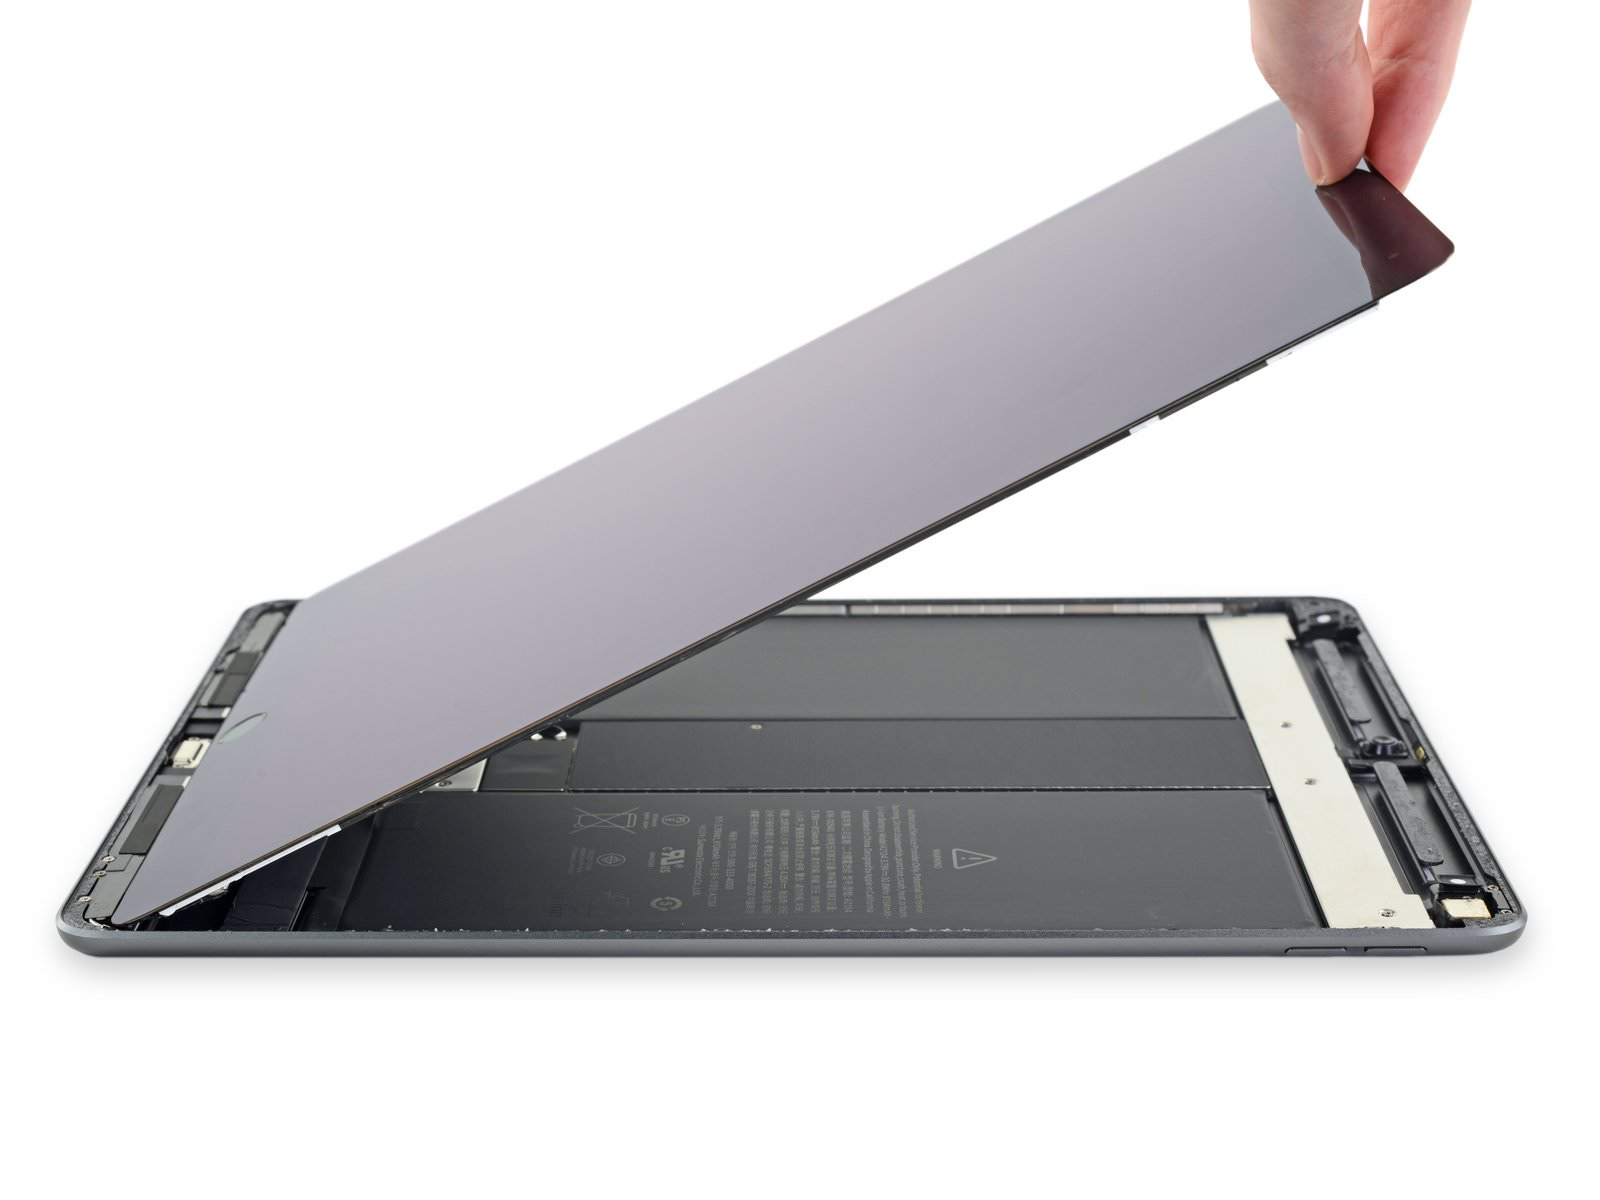 Ipad air teardown ifixit 1